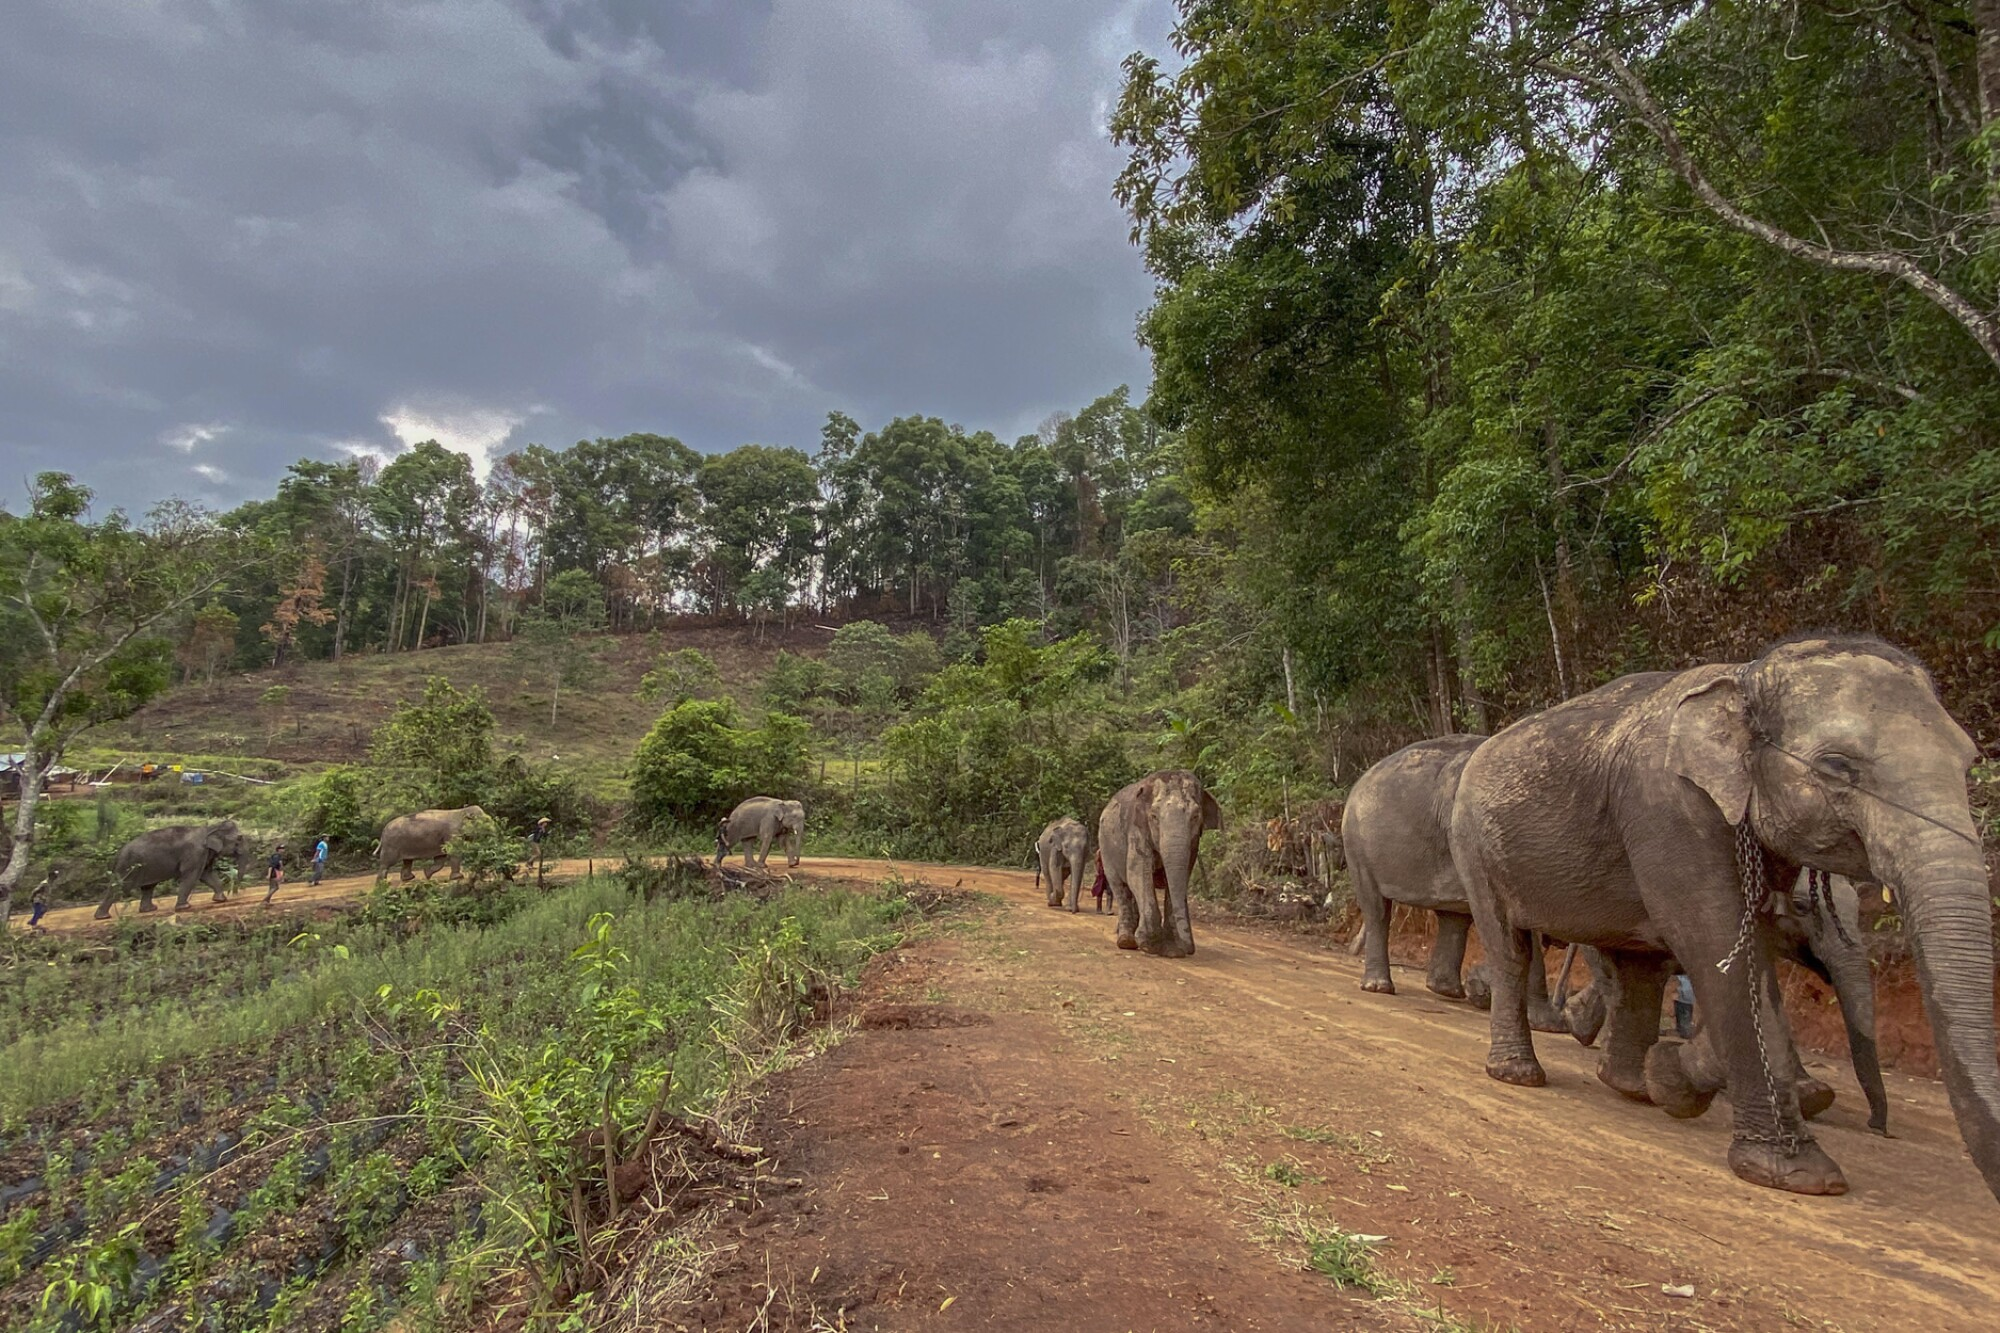 A herd of elephants on a road in northern Thailand